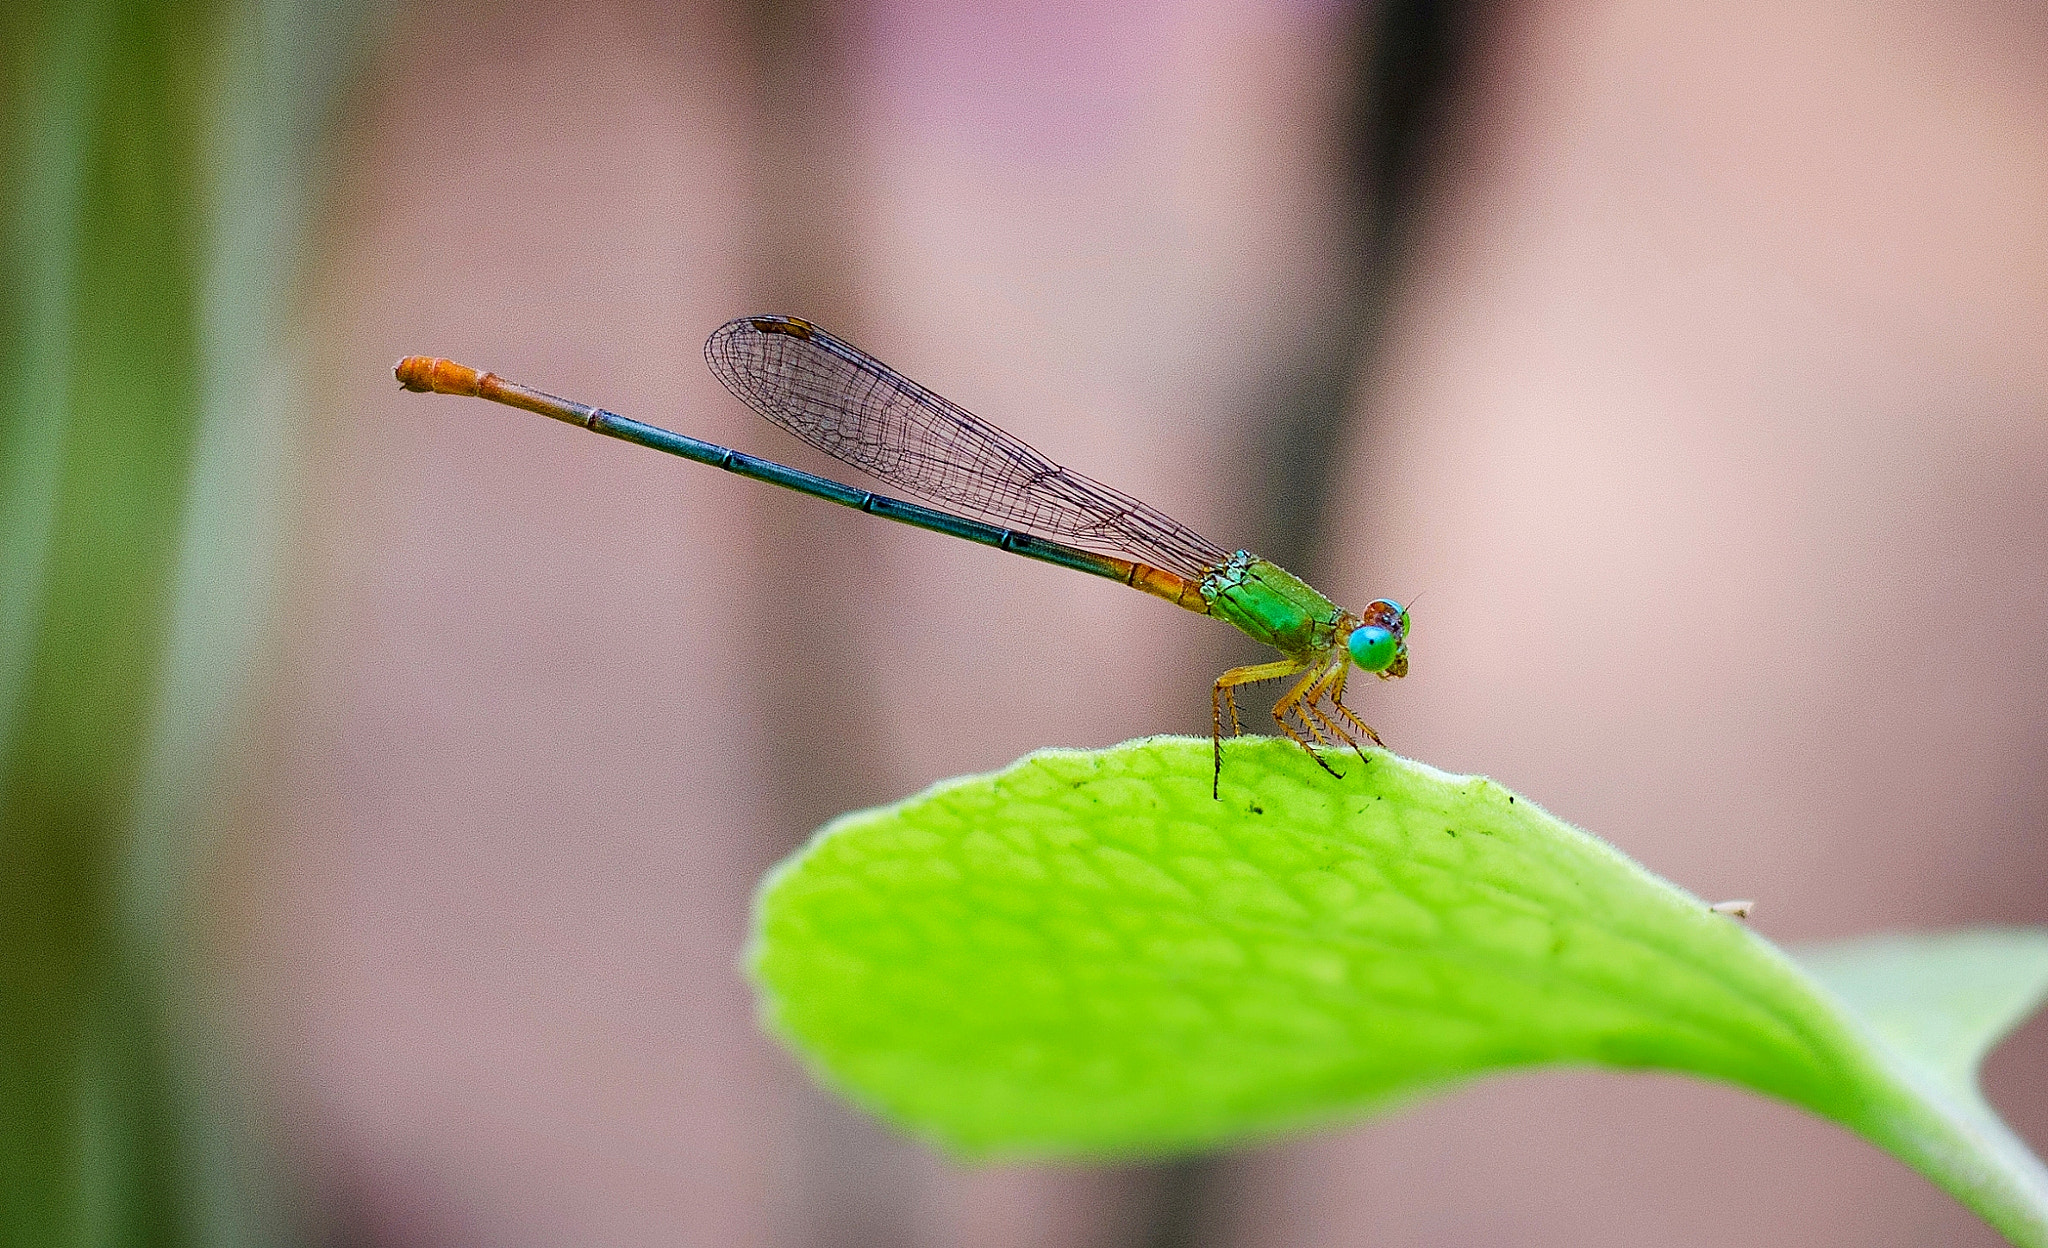 Photograph Damselfly by Subhash Radhakrishnan on 500px